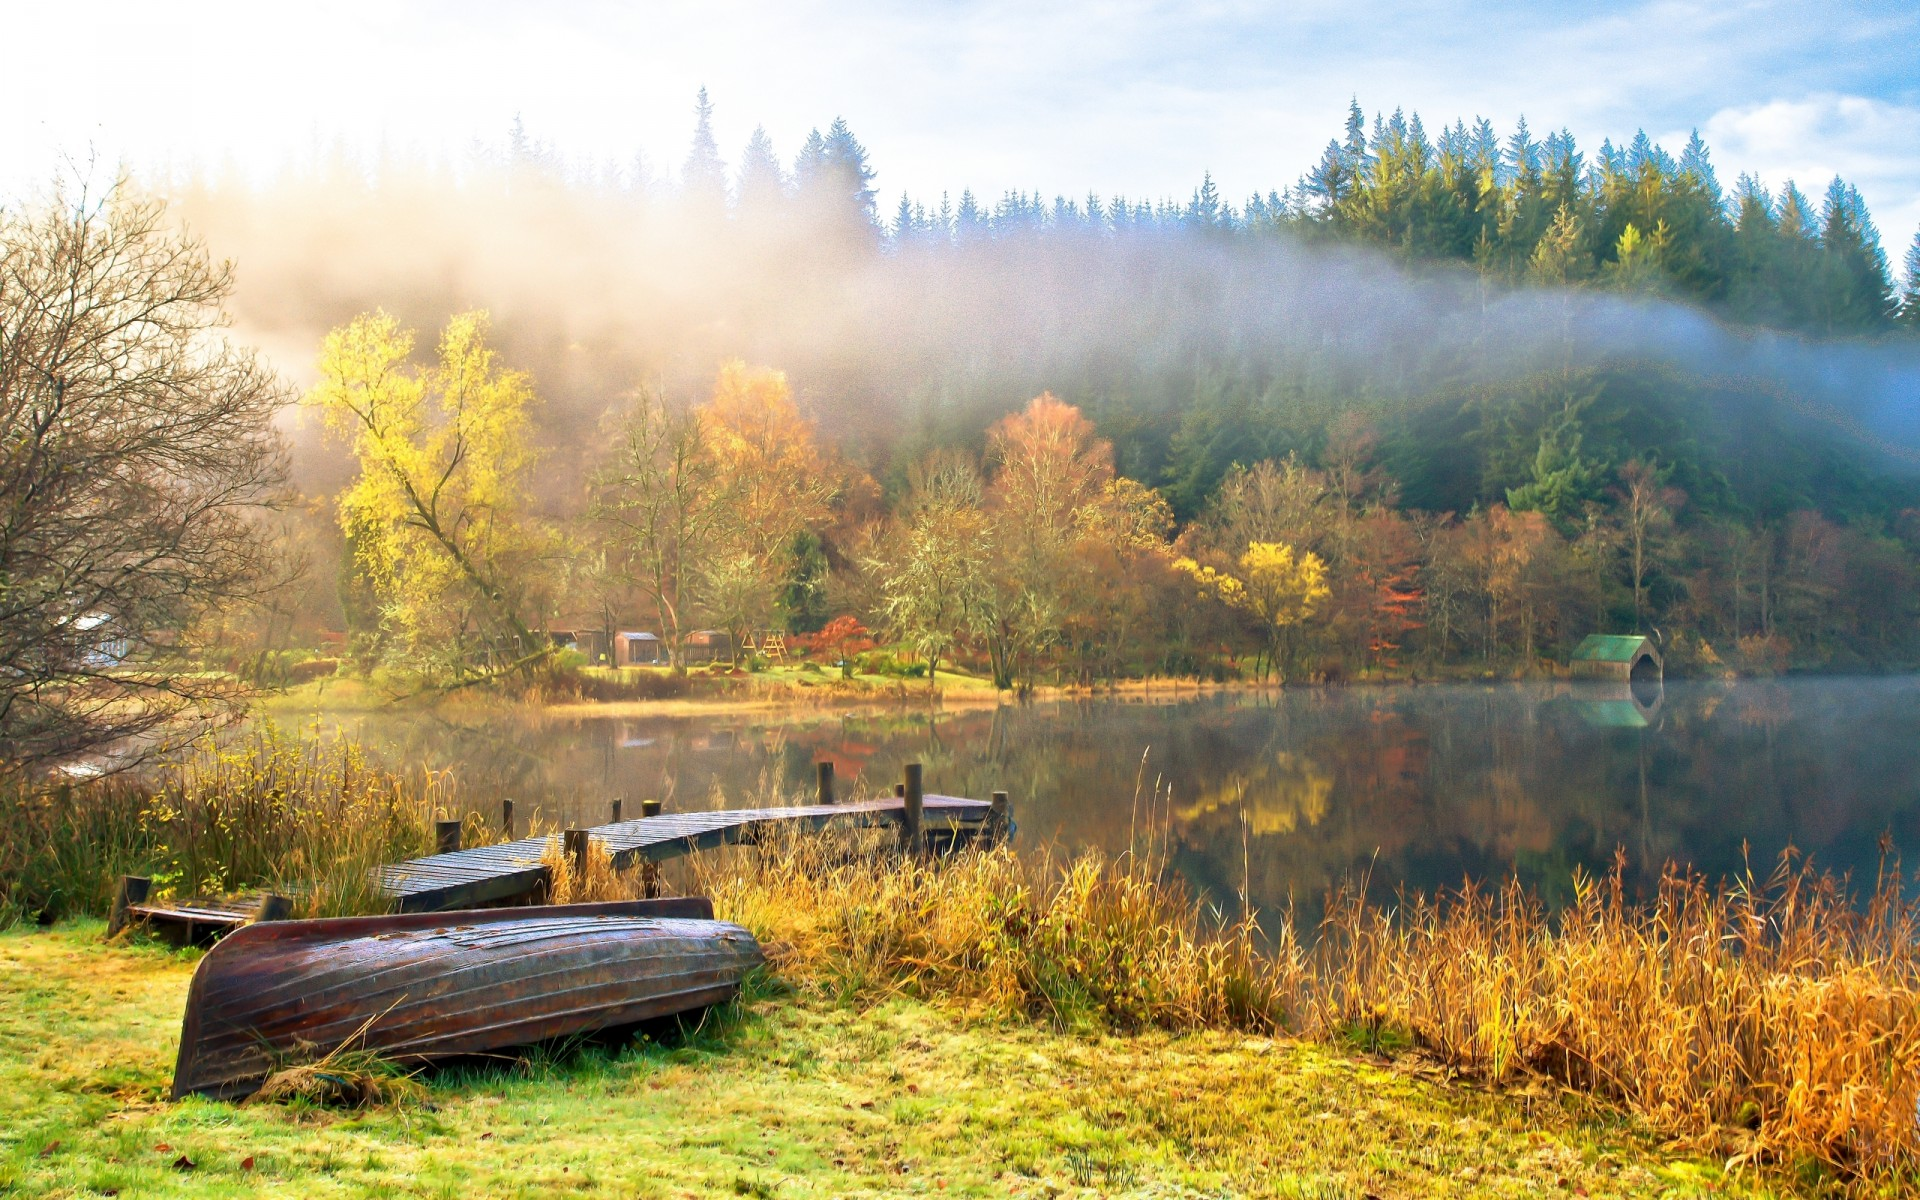 Nature Landscape Sky Clouds Lake Water Boats Trees Autumn Fog Reflection Fall Wallpaper 1920x1200 52174 Wallpaperup